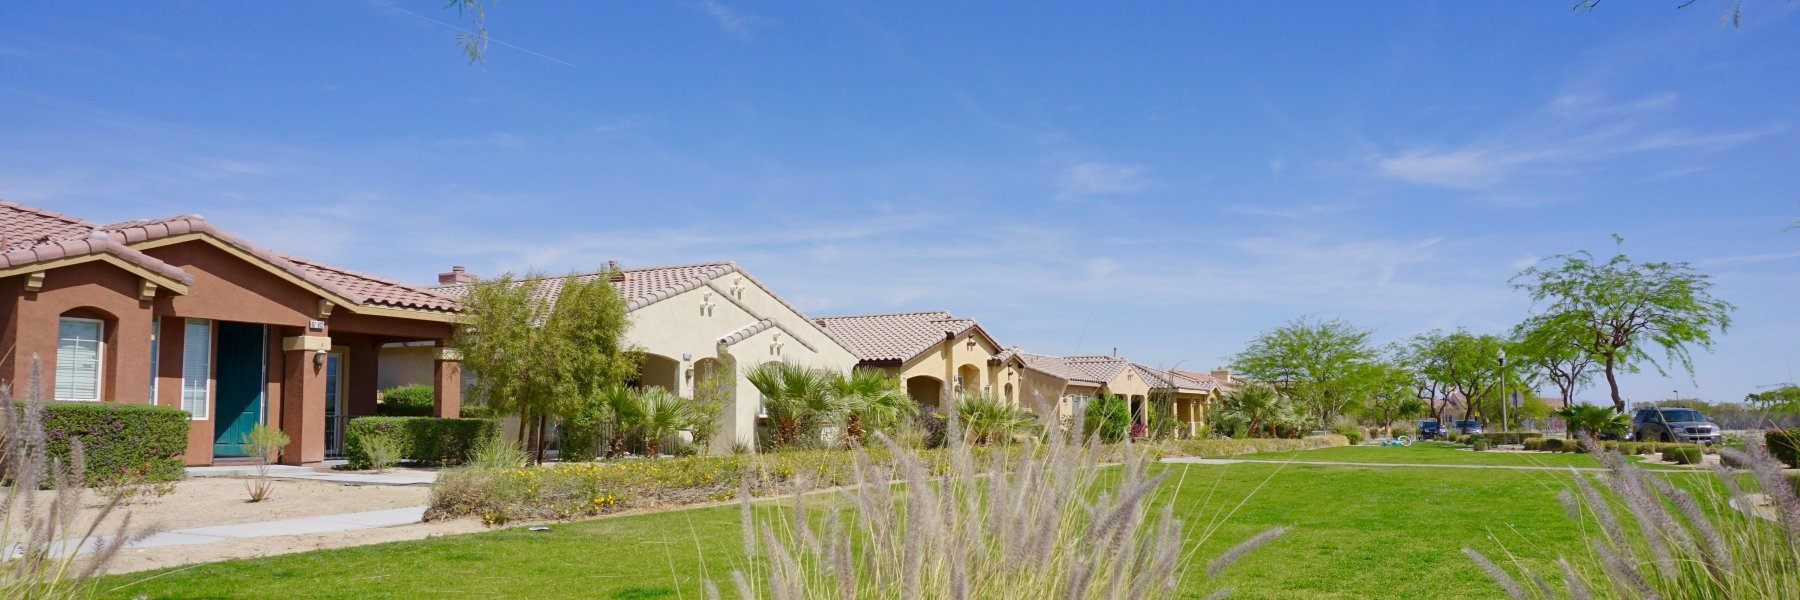 Verano is a community of homes in Cathedral City California